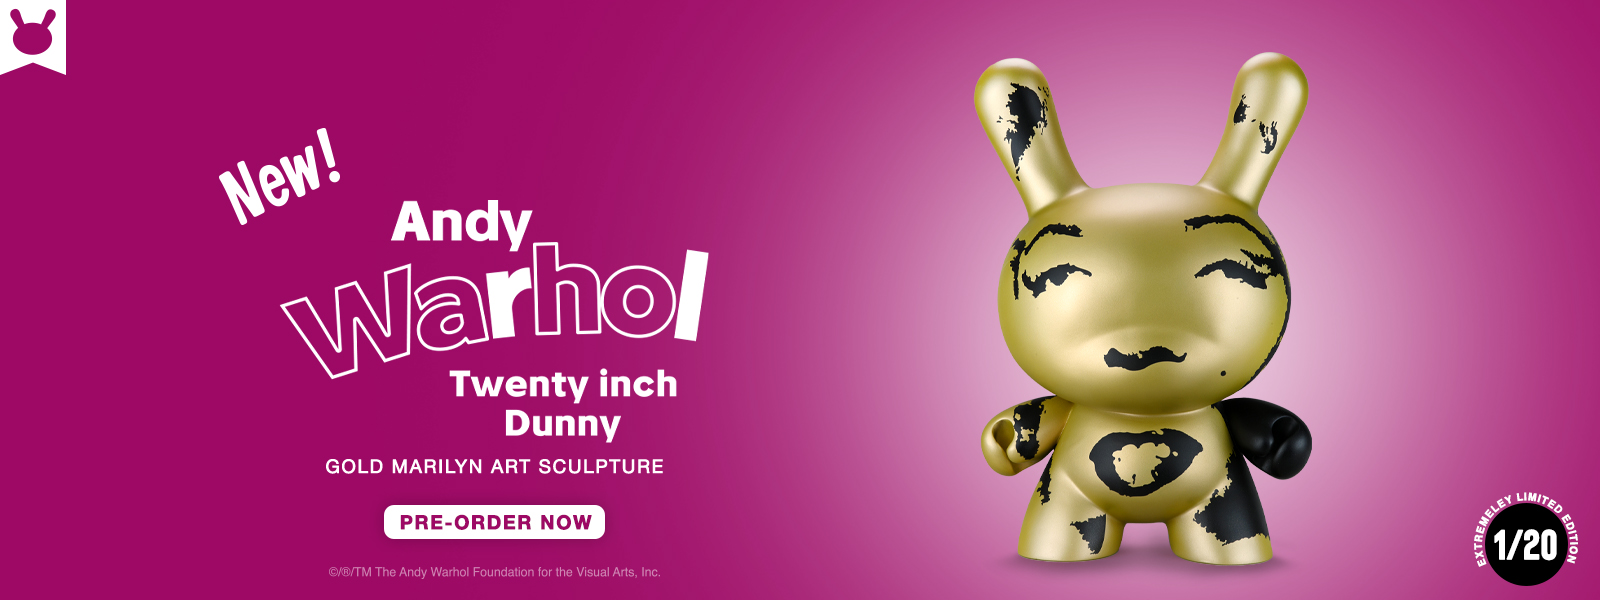 """Andy Warhol 20"""" Dunny Gold Marilyn"""